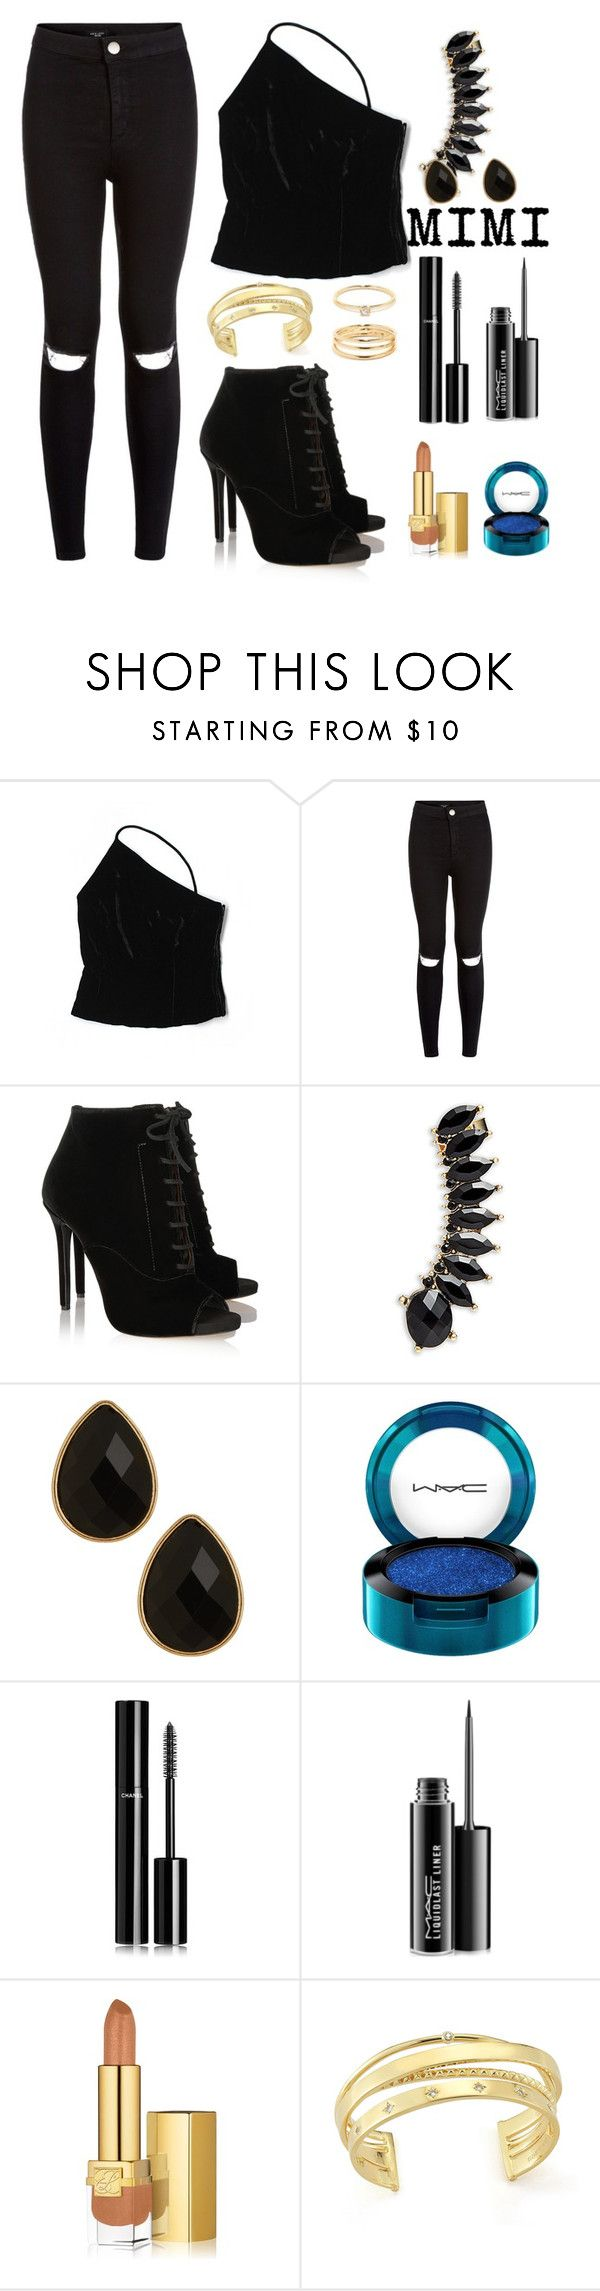 """Mimi Marquez"" ""RENT"" by ellelovesfashion07 ❤ liked on Polyvore featuring LOFT, Tabitha Simmons, Jules Smith, Natasha Accessories, MAC Cosmetics, Chanel, Estée Lauder, Elizabeth and James, women's clothing and women's fashion"